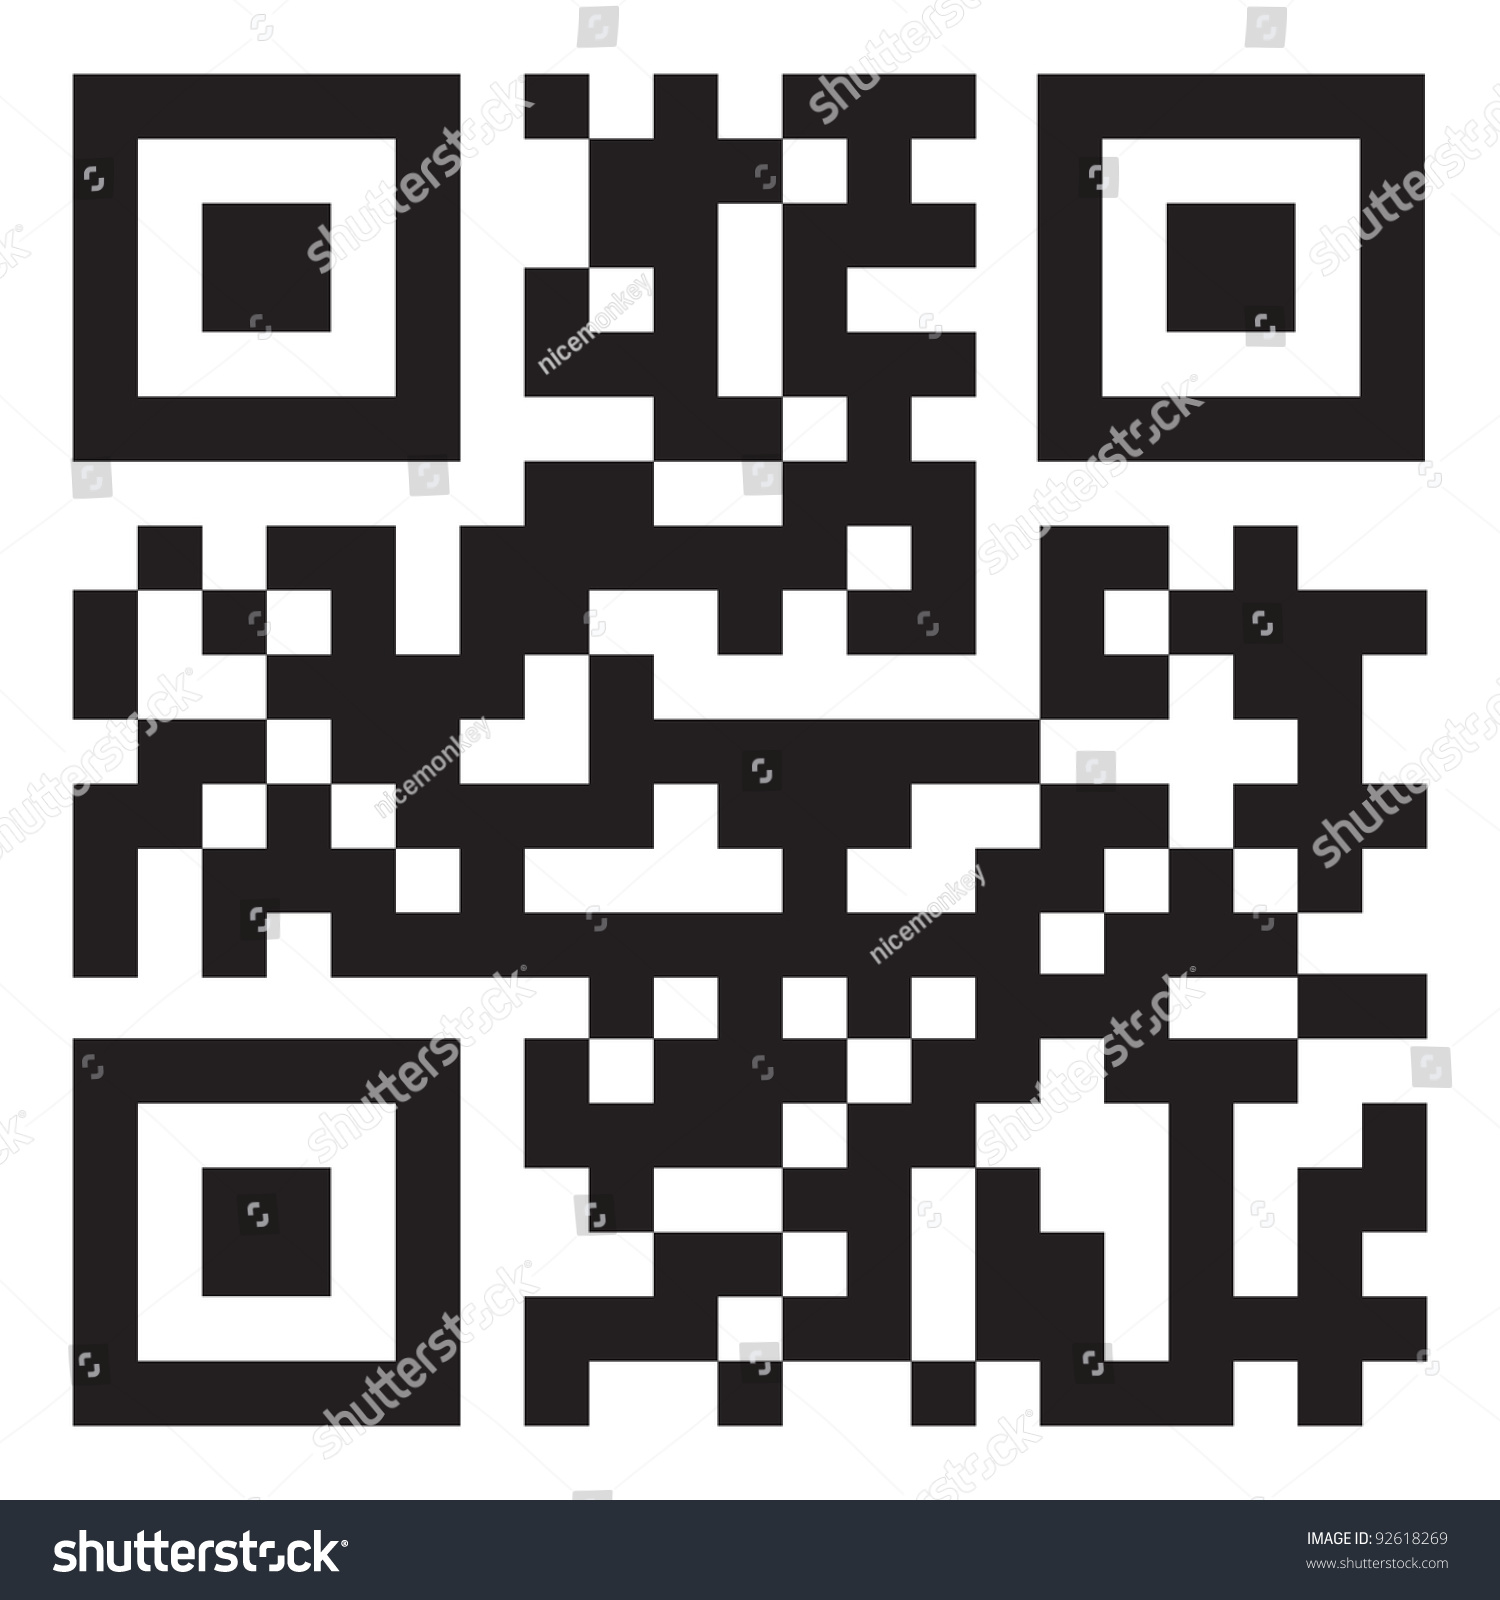 Sample Qr Code Ready To Scan With Smart Phone Stock Vector 92618269 : Shutterstock